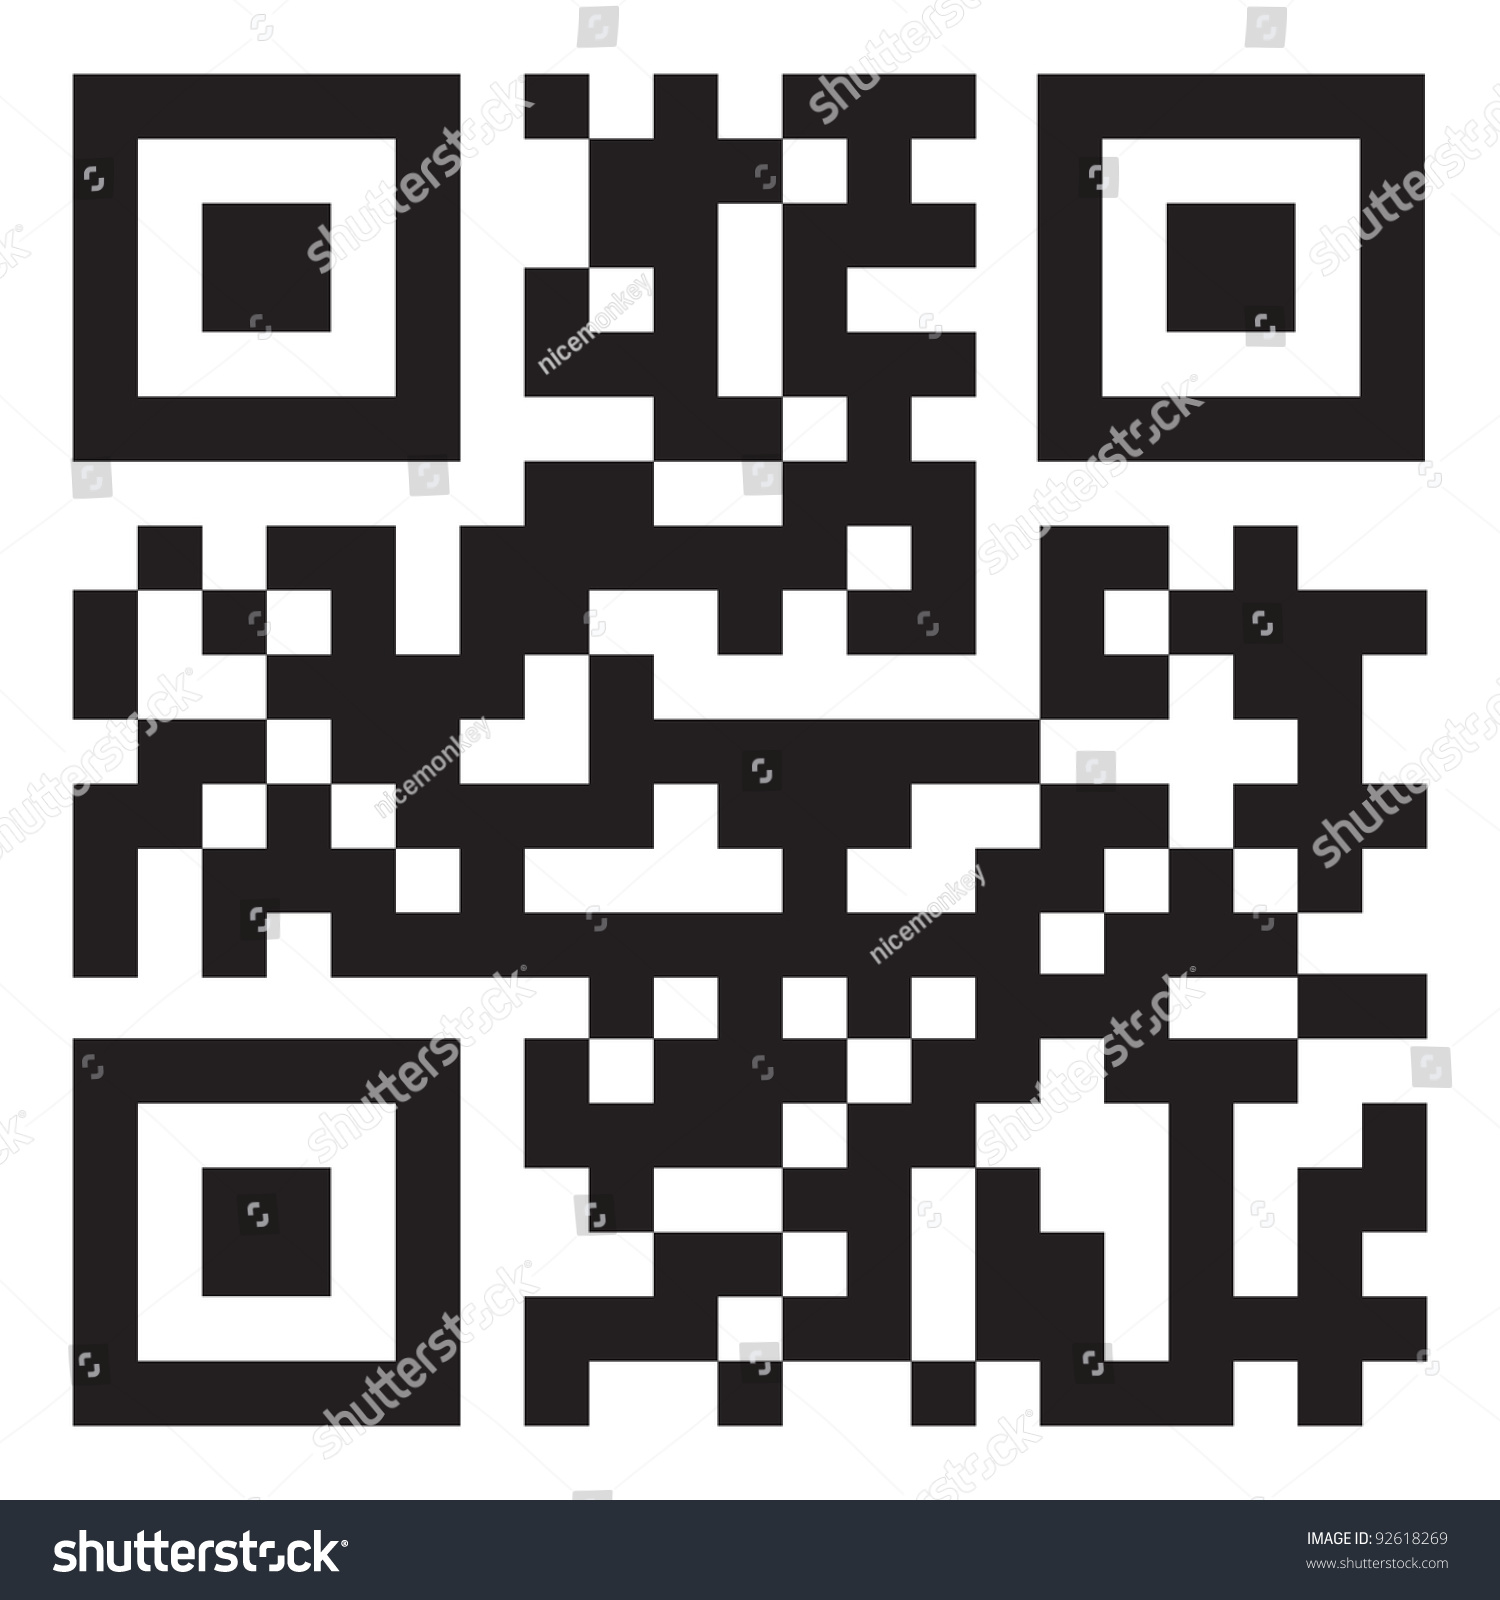 Sample Qr Code Ready To Scan With Smart Phone Stock Vector 92618269 : Shutterstock